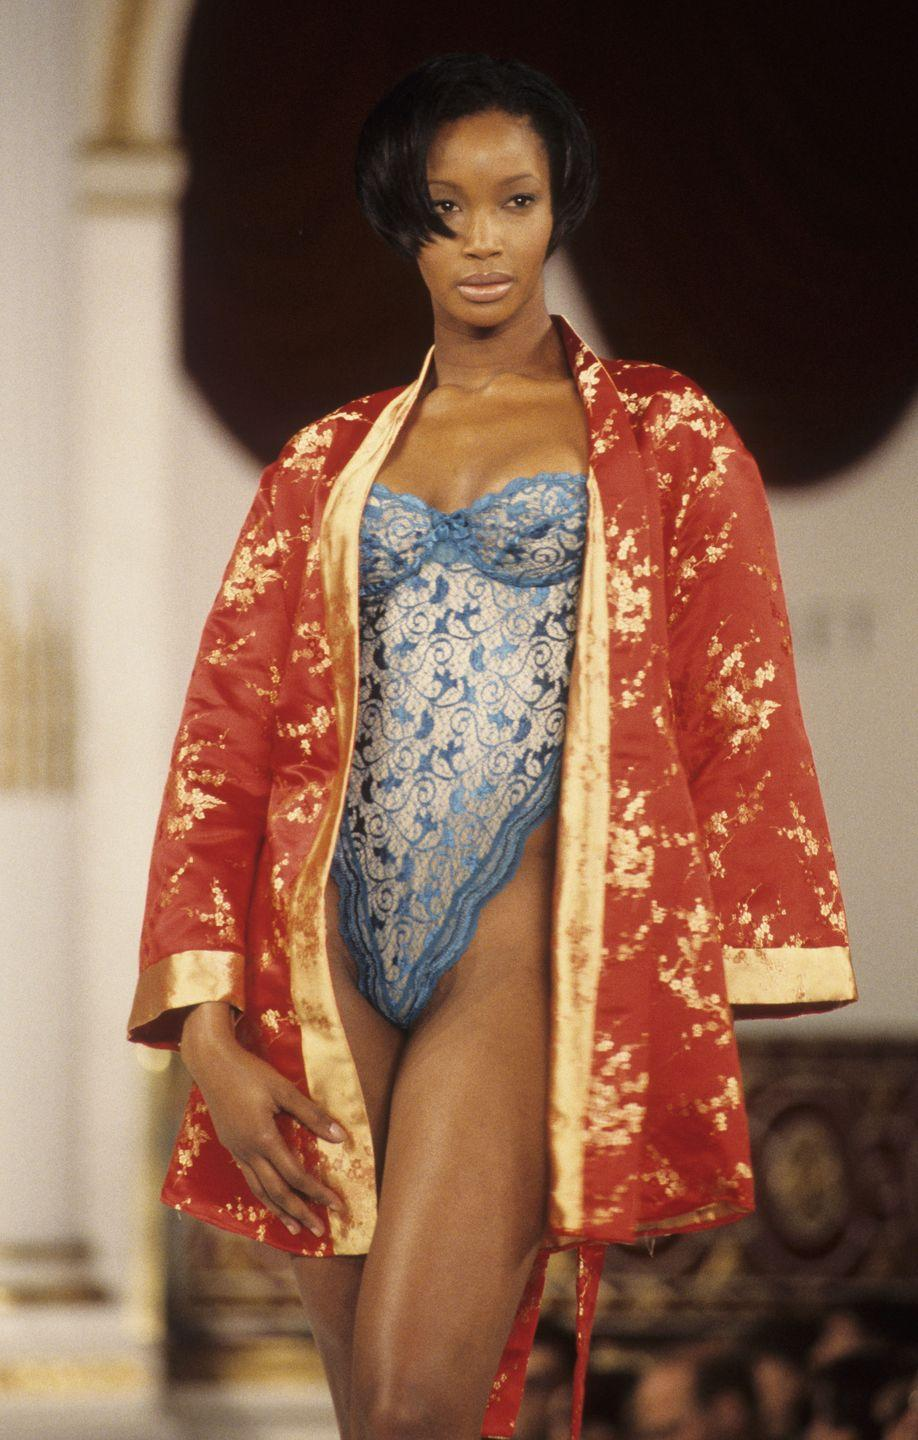 <p>Beverly Peele modeled for countless magazines including <em>Mademoiselle, </em><em>Elle</em>, <em>Vogue </em>as well as, yours truly, <em>Cosmopolitan. </em></p>